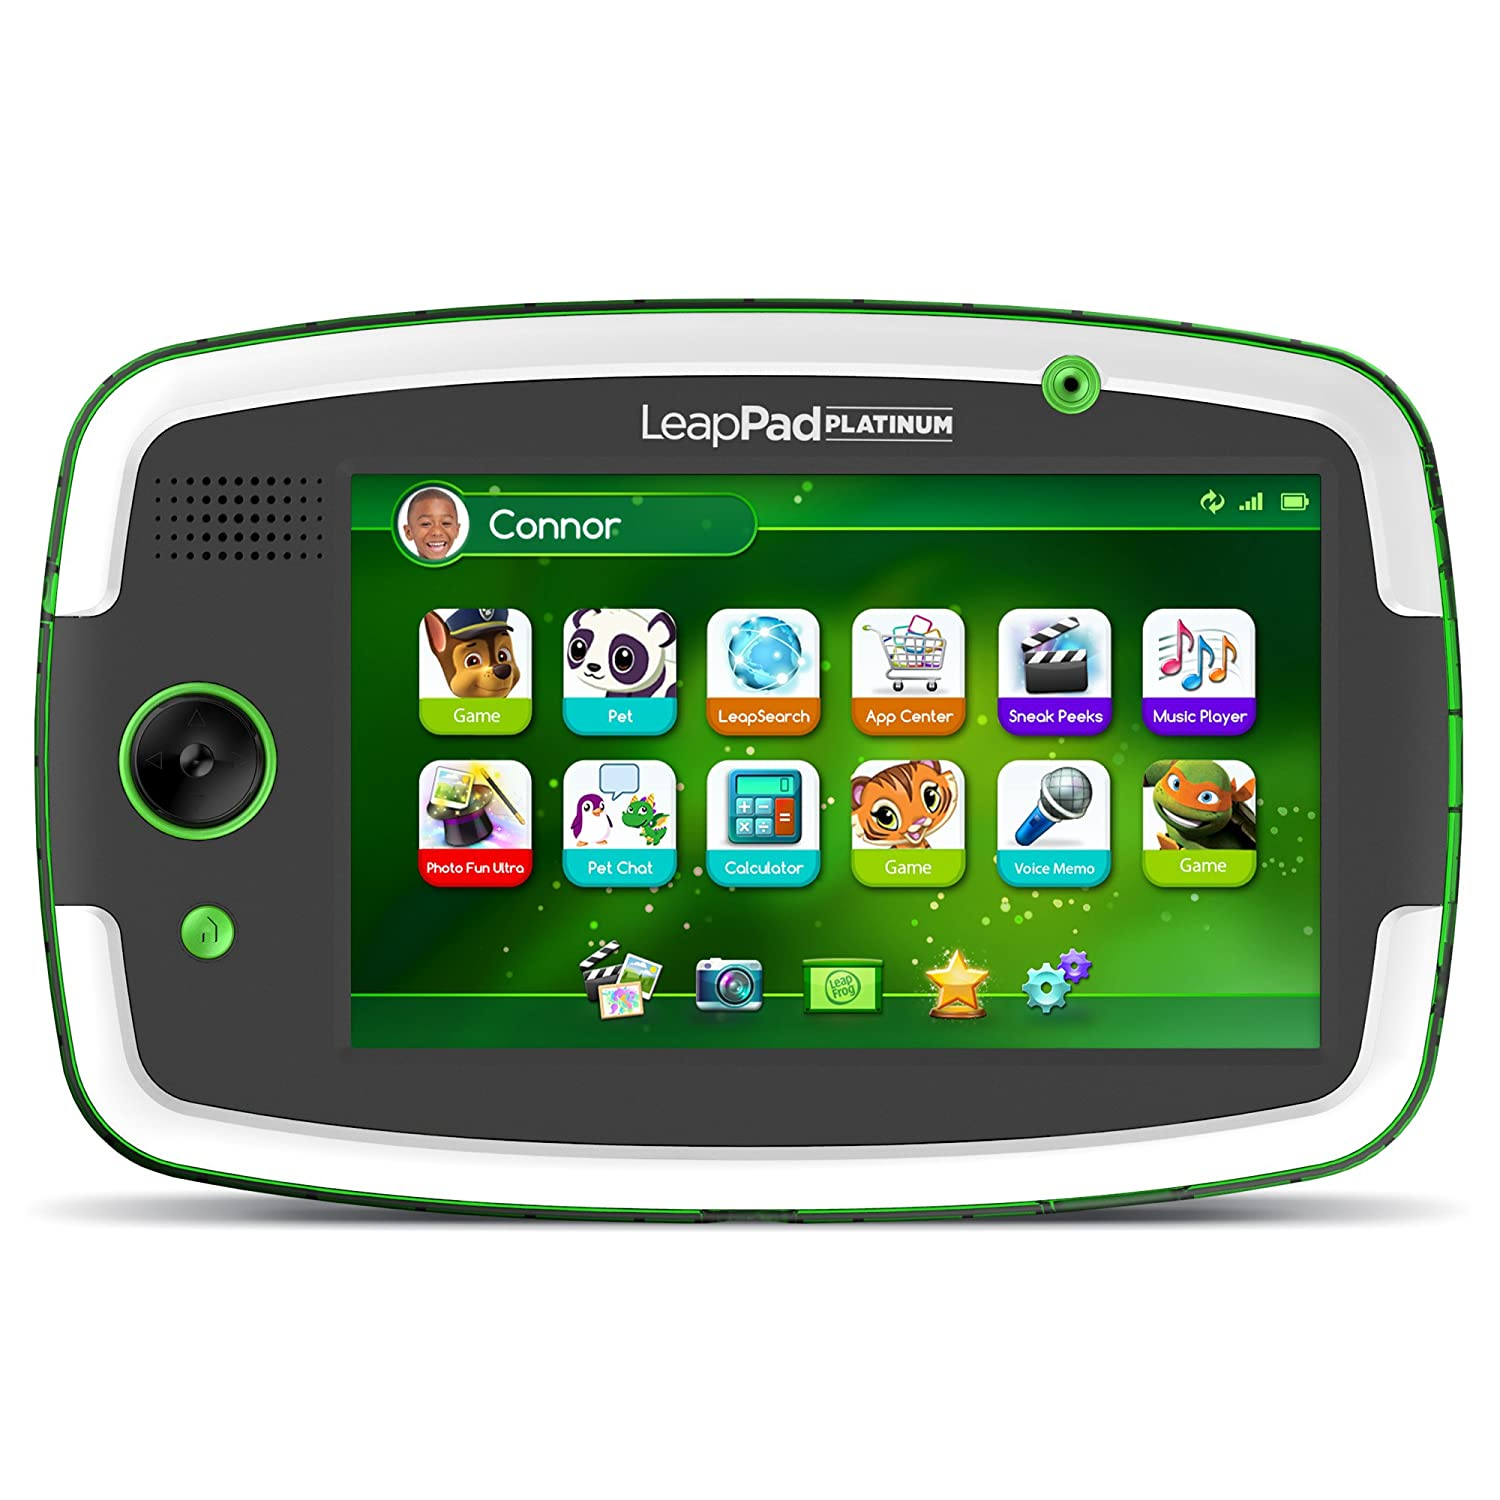 Miraculous Leapfrog Leappad Platinum Kids Learning Tablet Green Download Free Architecture Designs Rallybritishbridgeorg